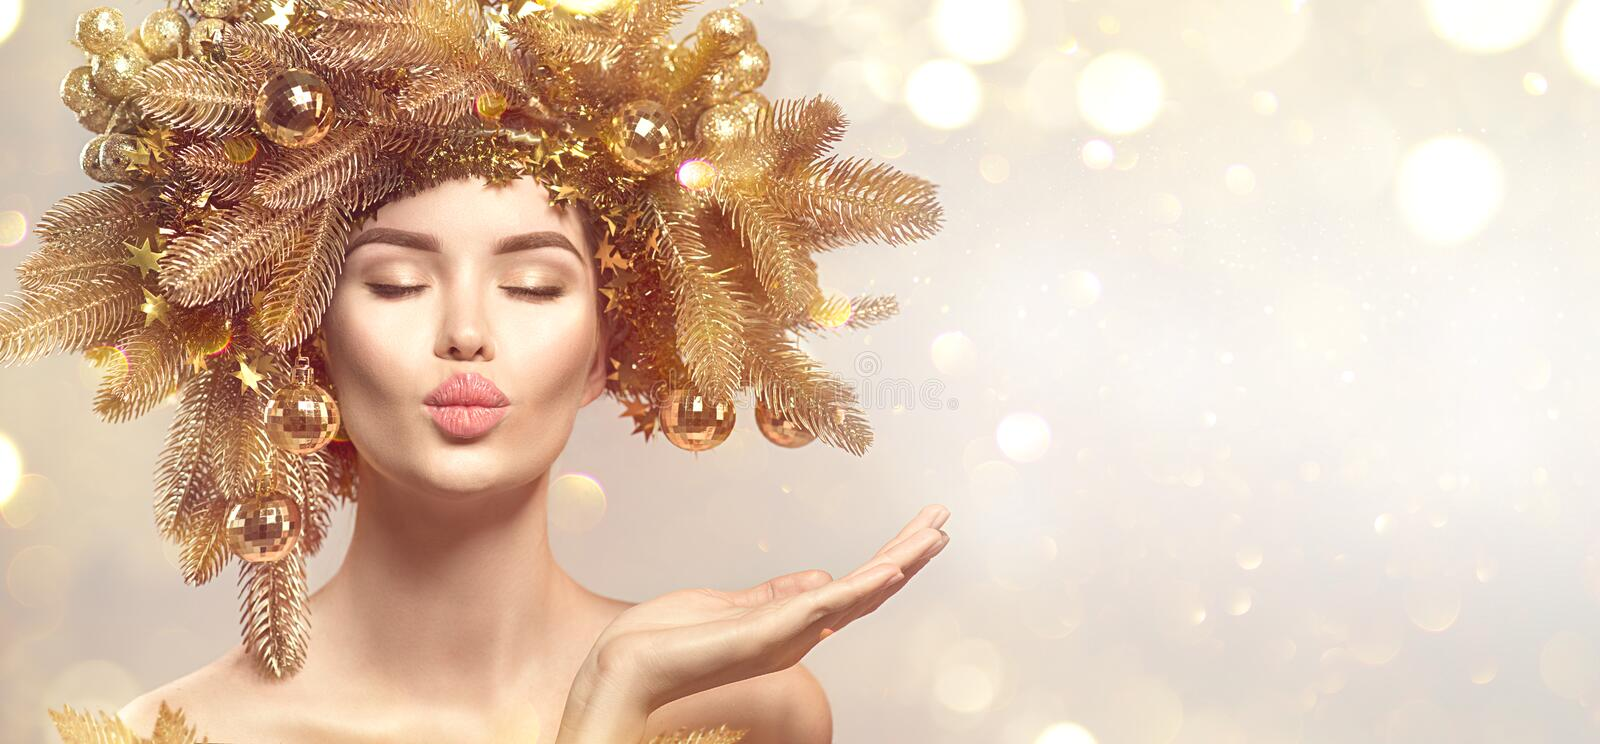 Christmas Woman with golden spruce tree wreath hairstyle on blurred pastel background. Beautiful Xmas model girl royalty free stock photos